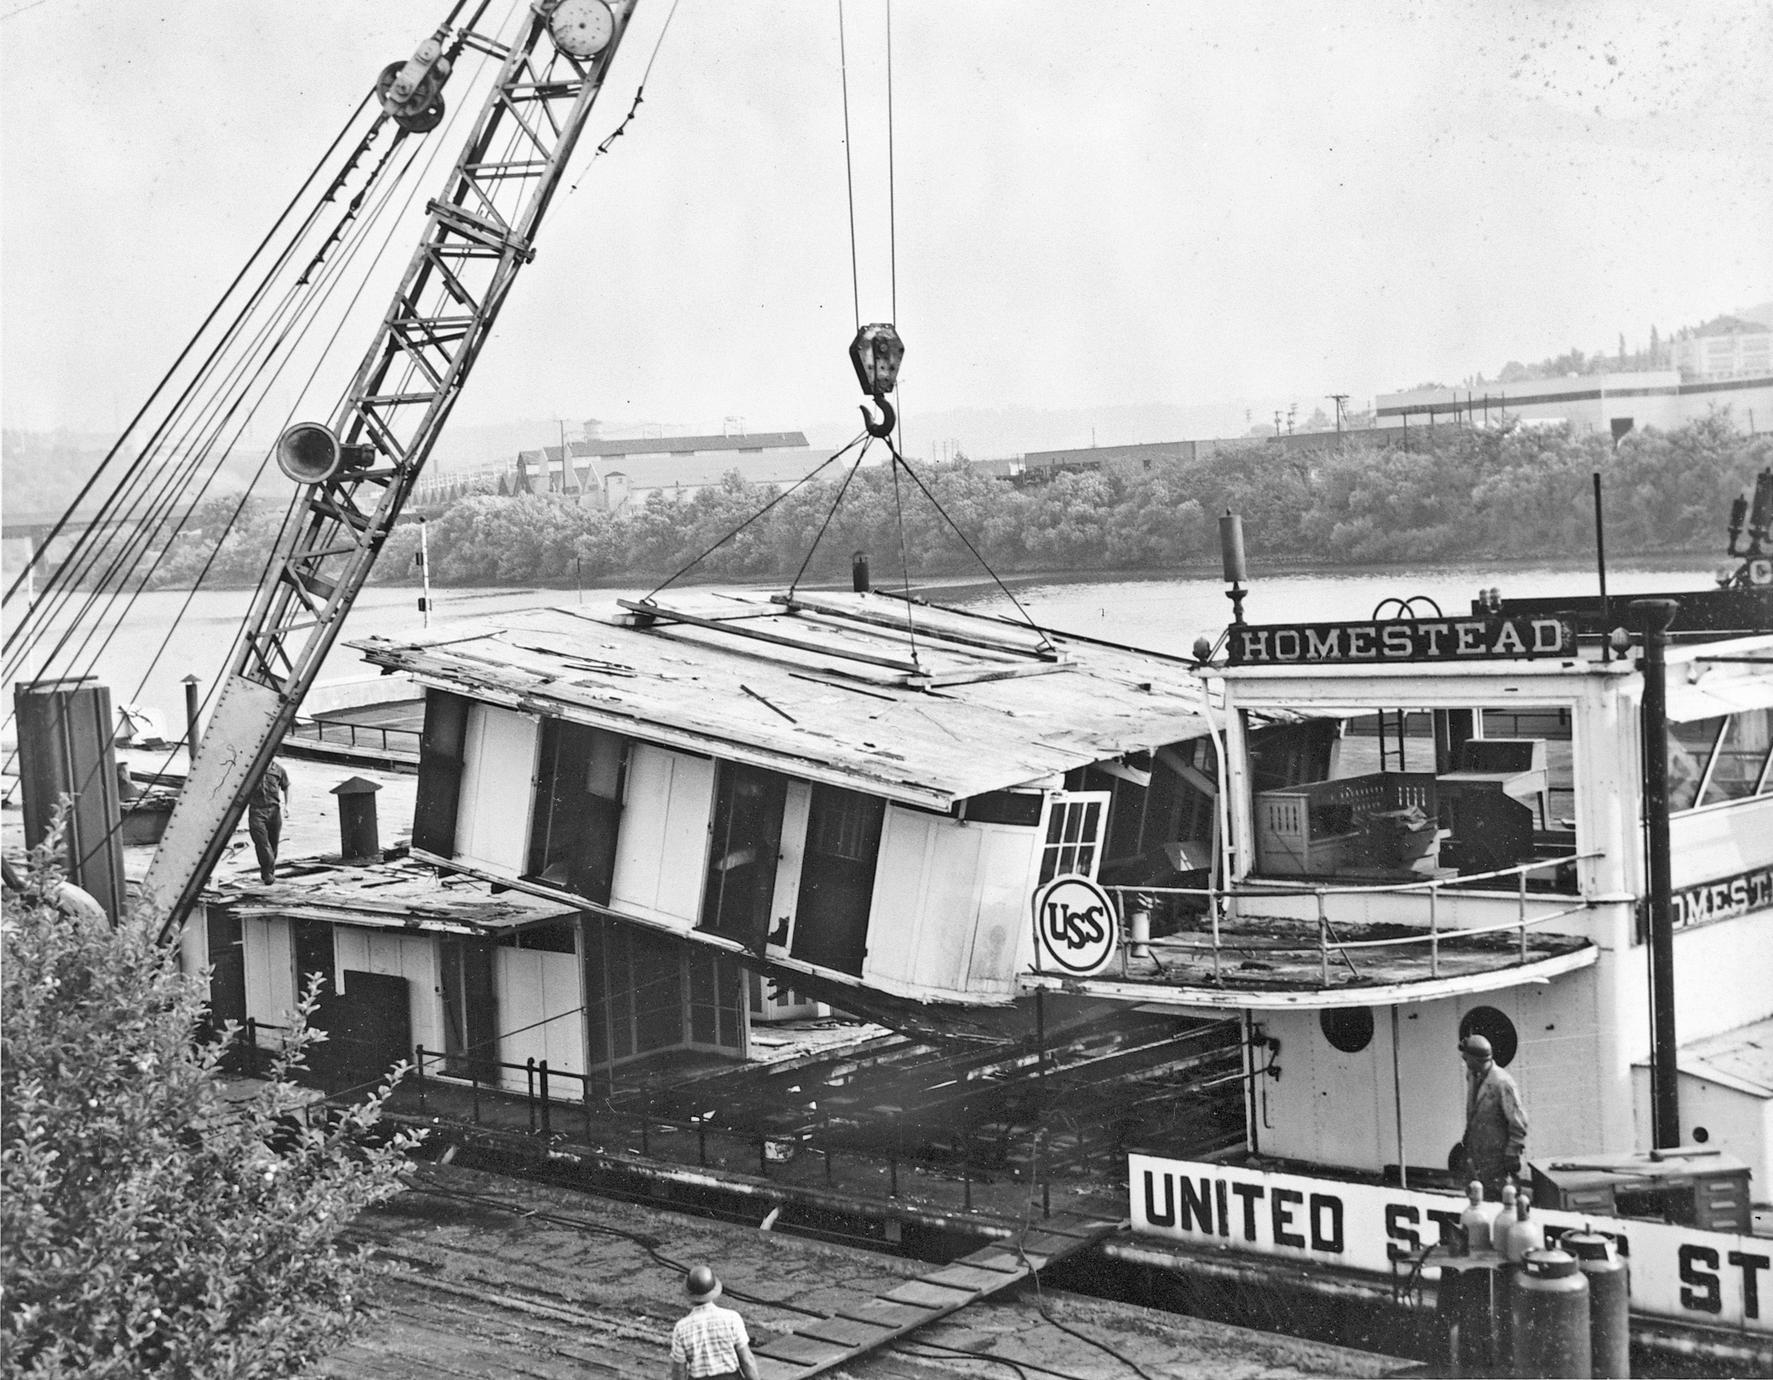 Homestead (Towboat, 1945-1960)